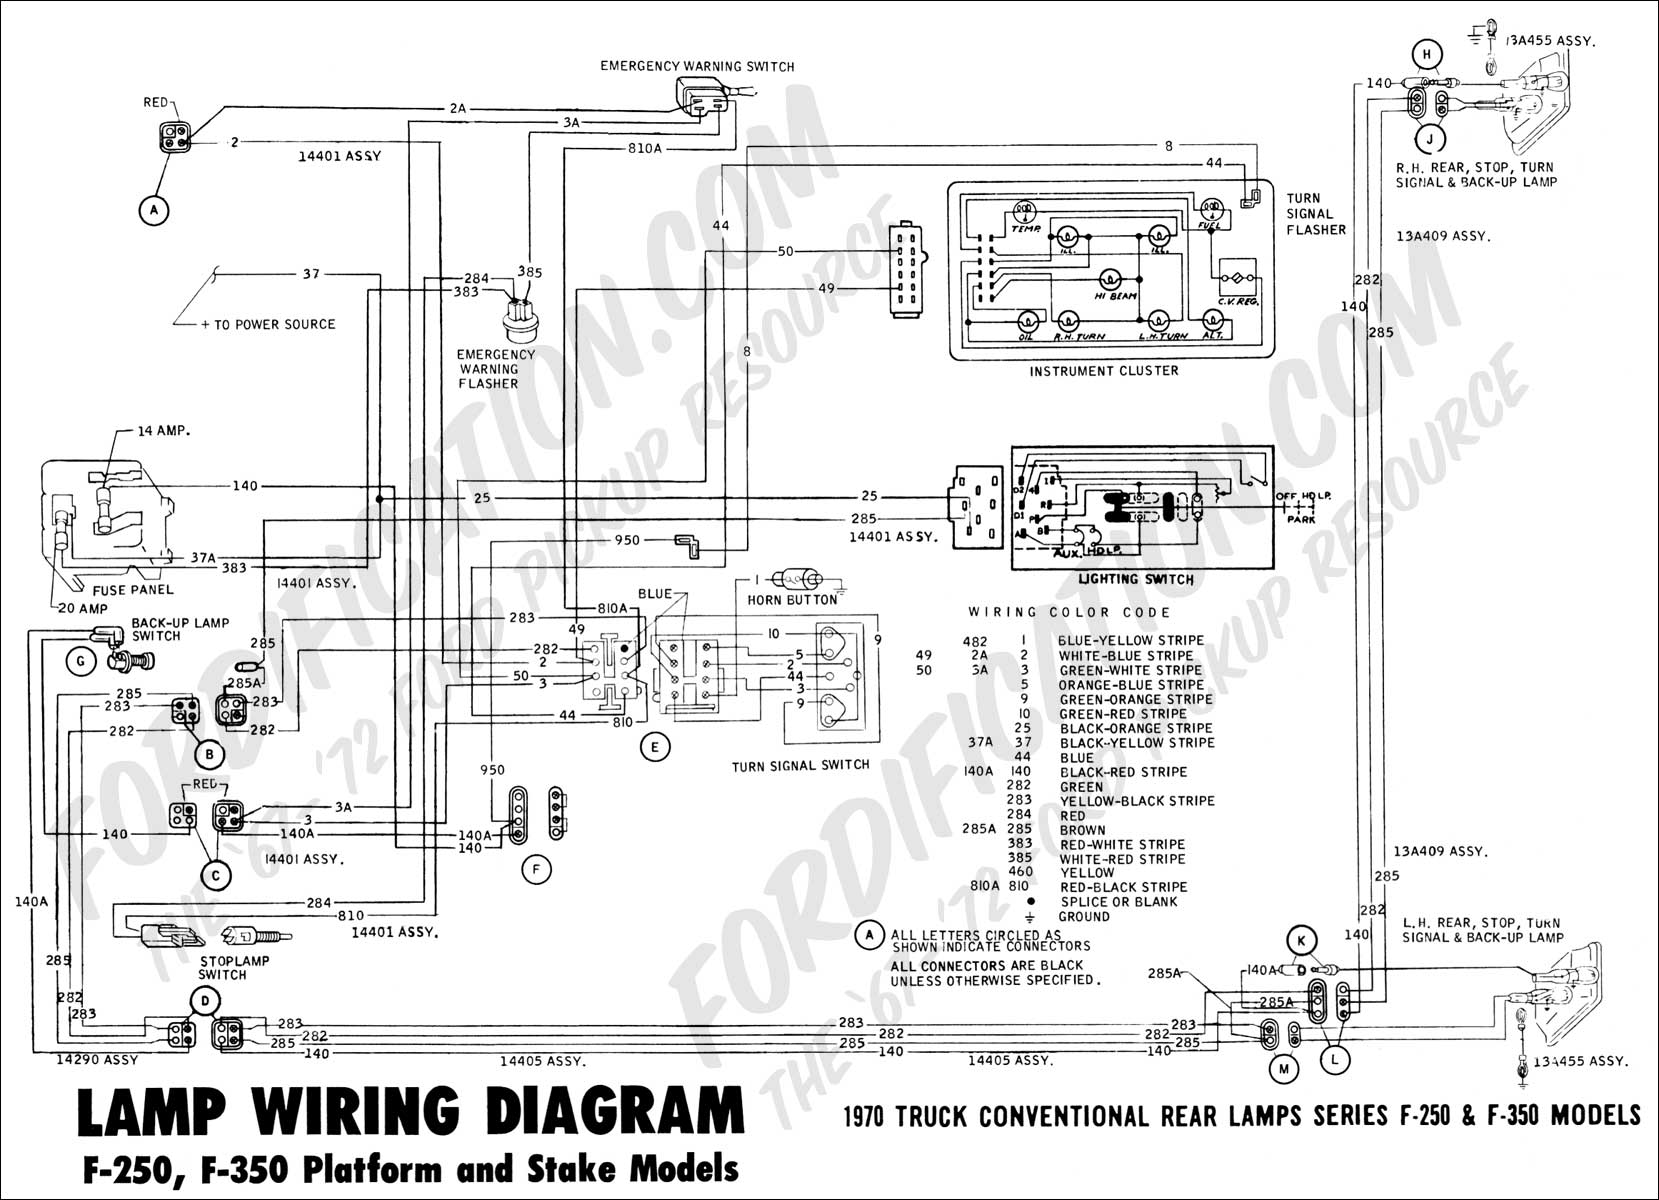 hight resolution of 1995 ford f 350 light wiring diagram wiring diagram schematics 1995 ford f350 dome light wiring diagram 95 ford f350 light wiring diagram